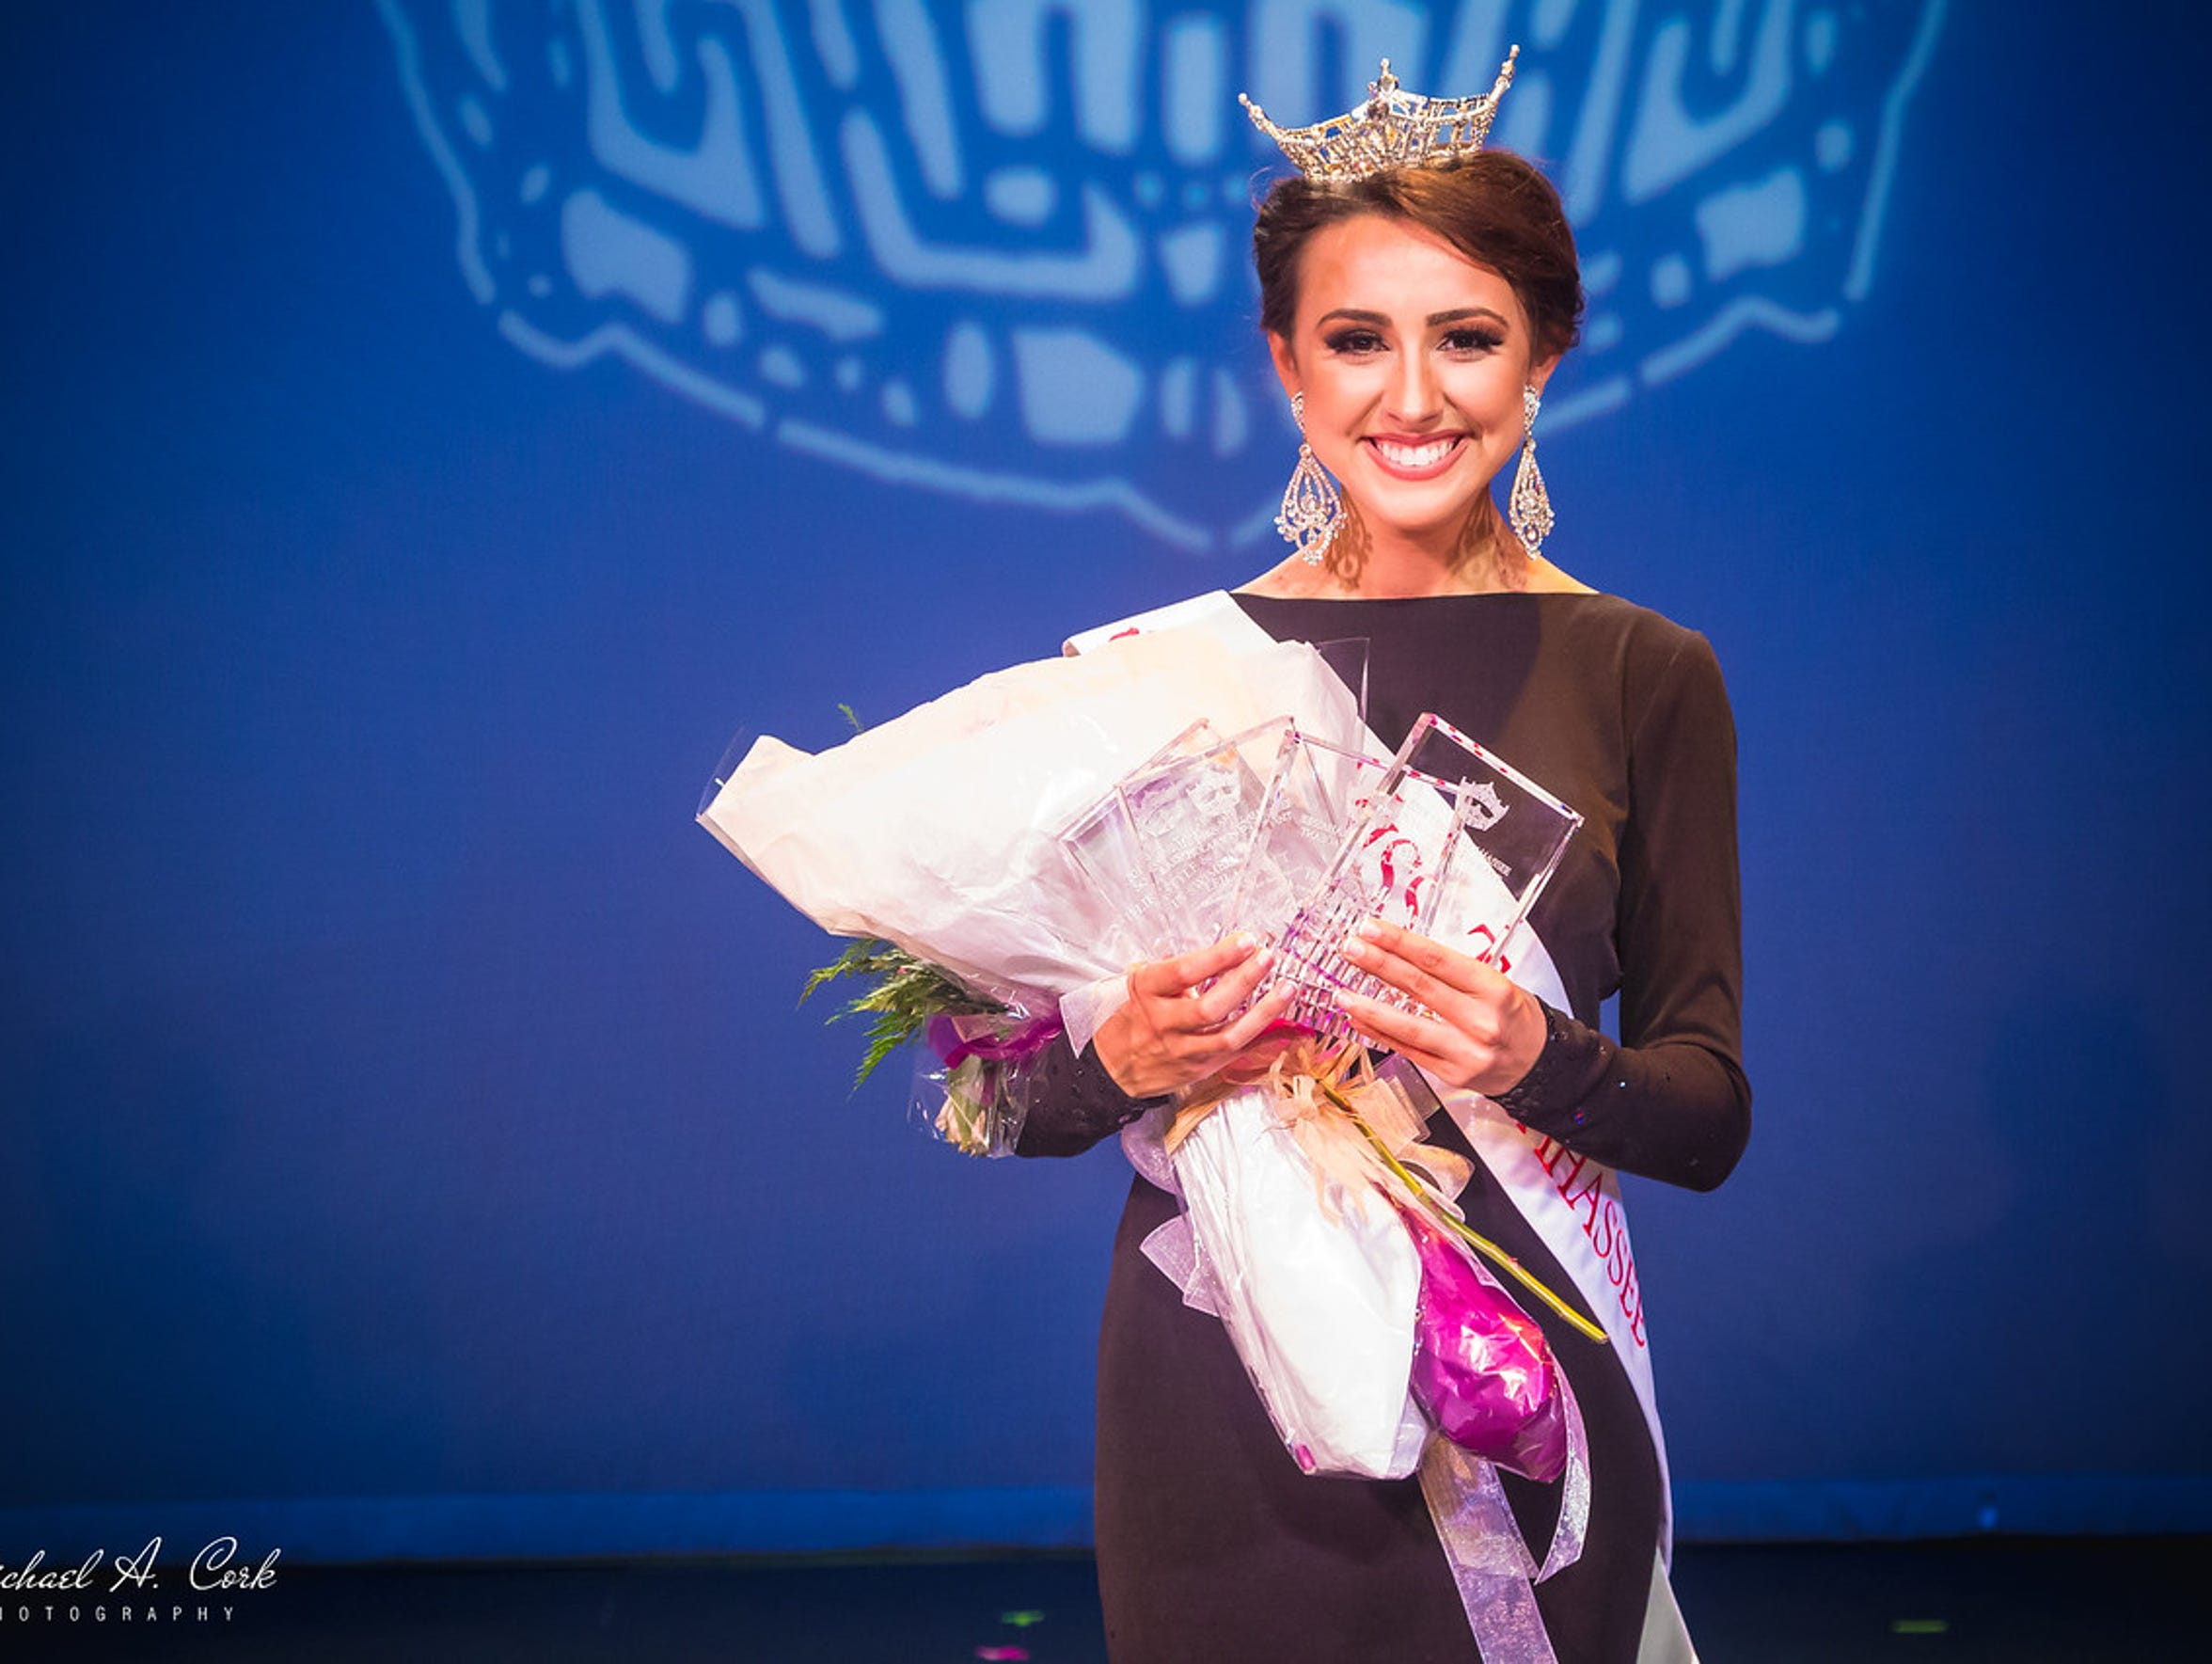 On Saturday, March 24th, 2018, Sabet was crowned Miss